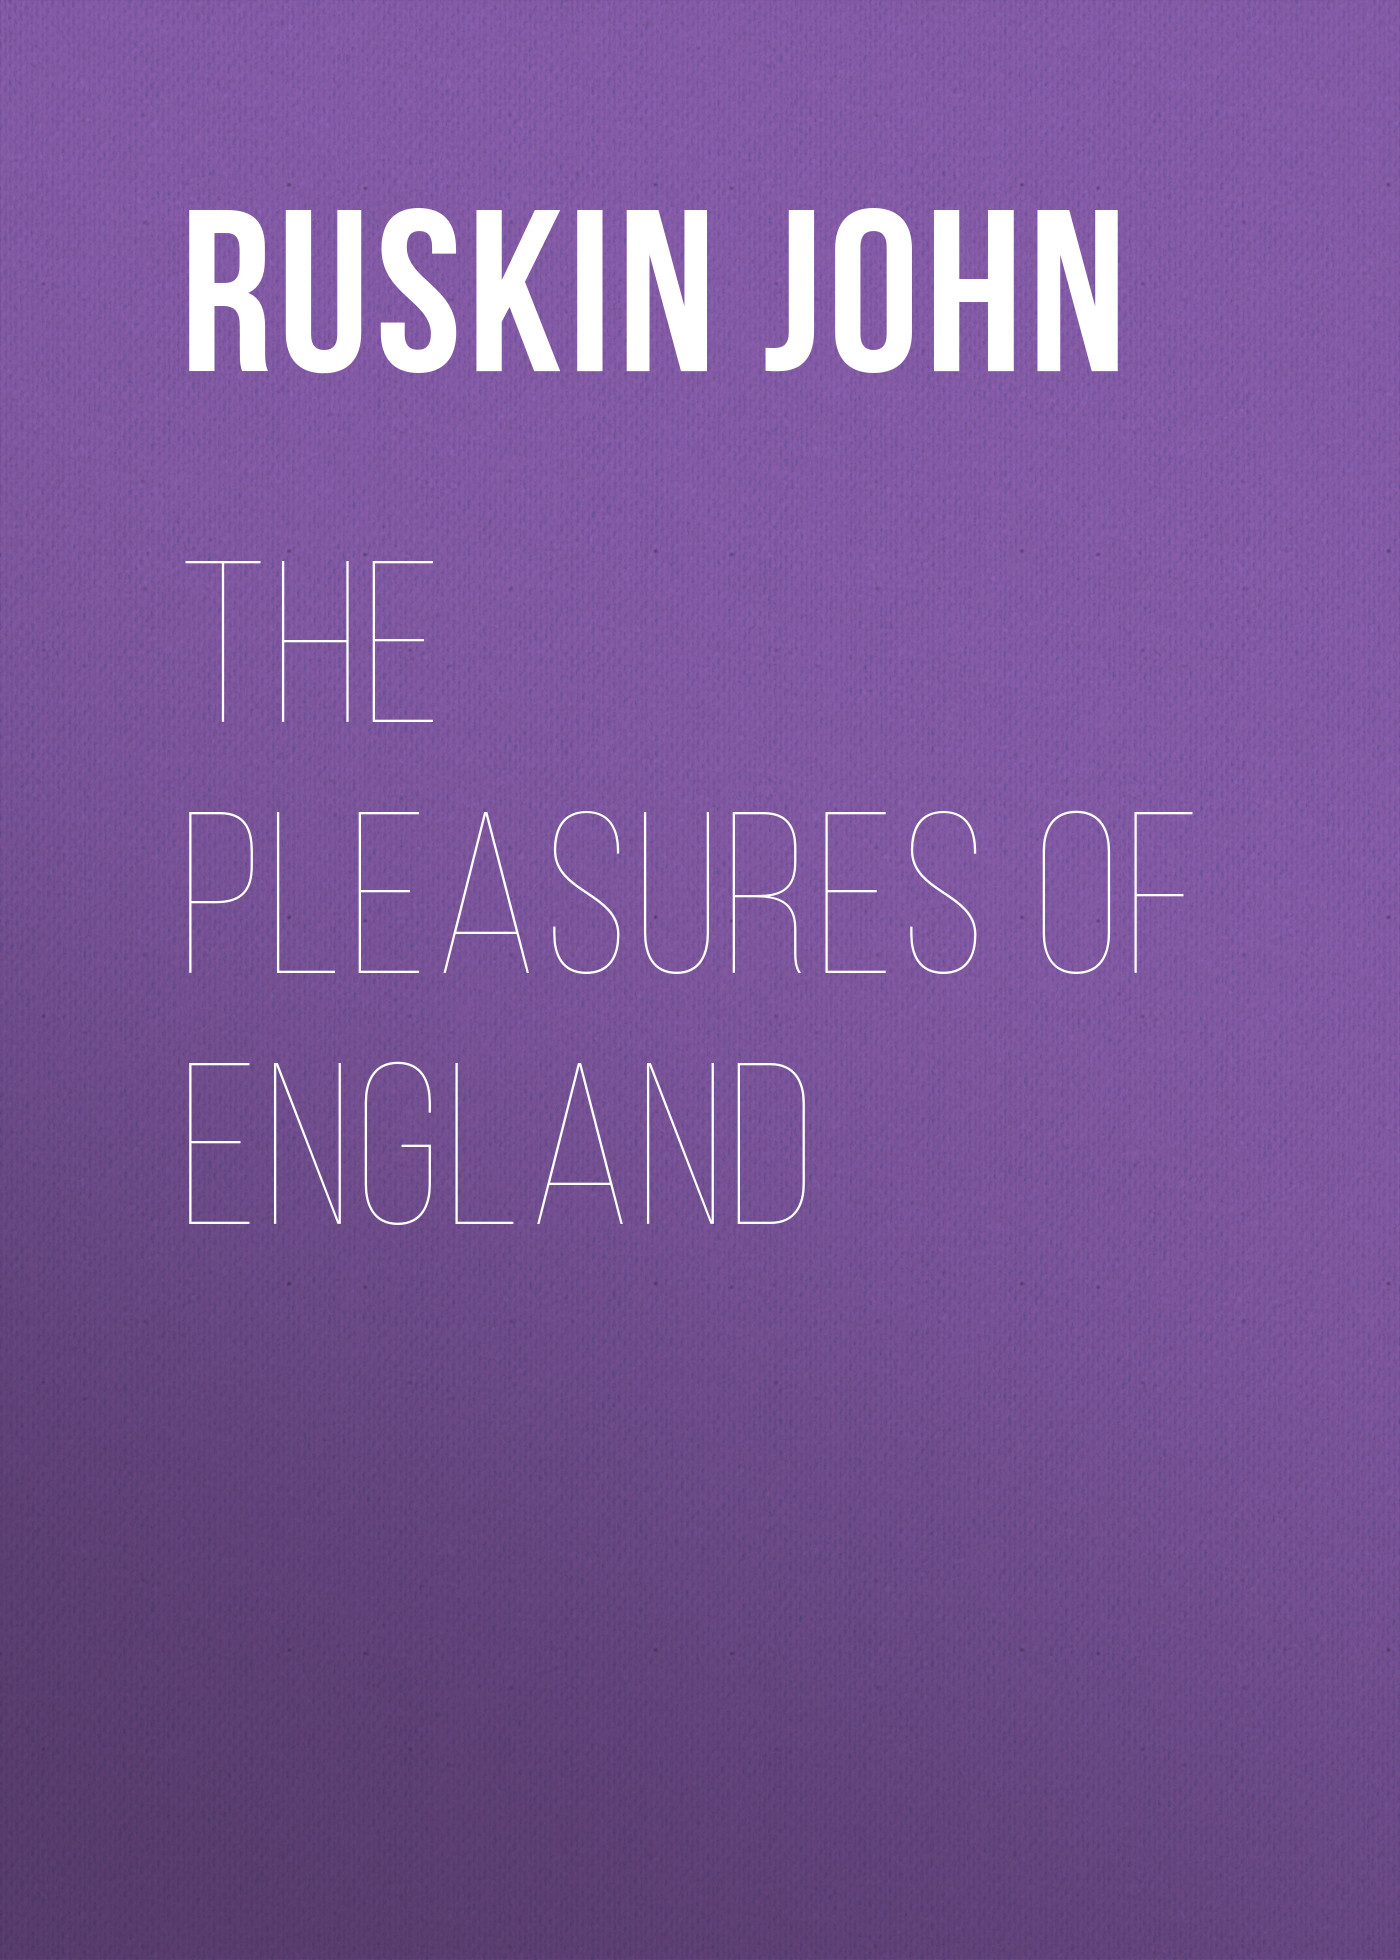 Ruskin John The Pleasures of England john ruskin the thoughts of john ruskin